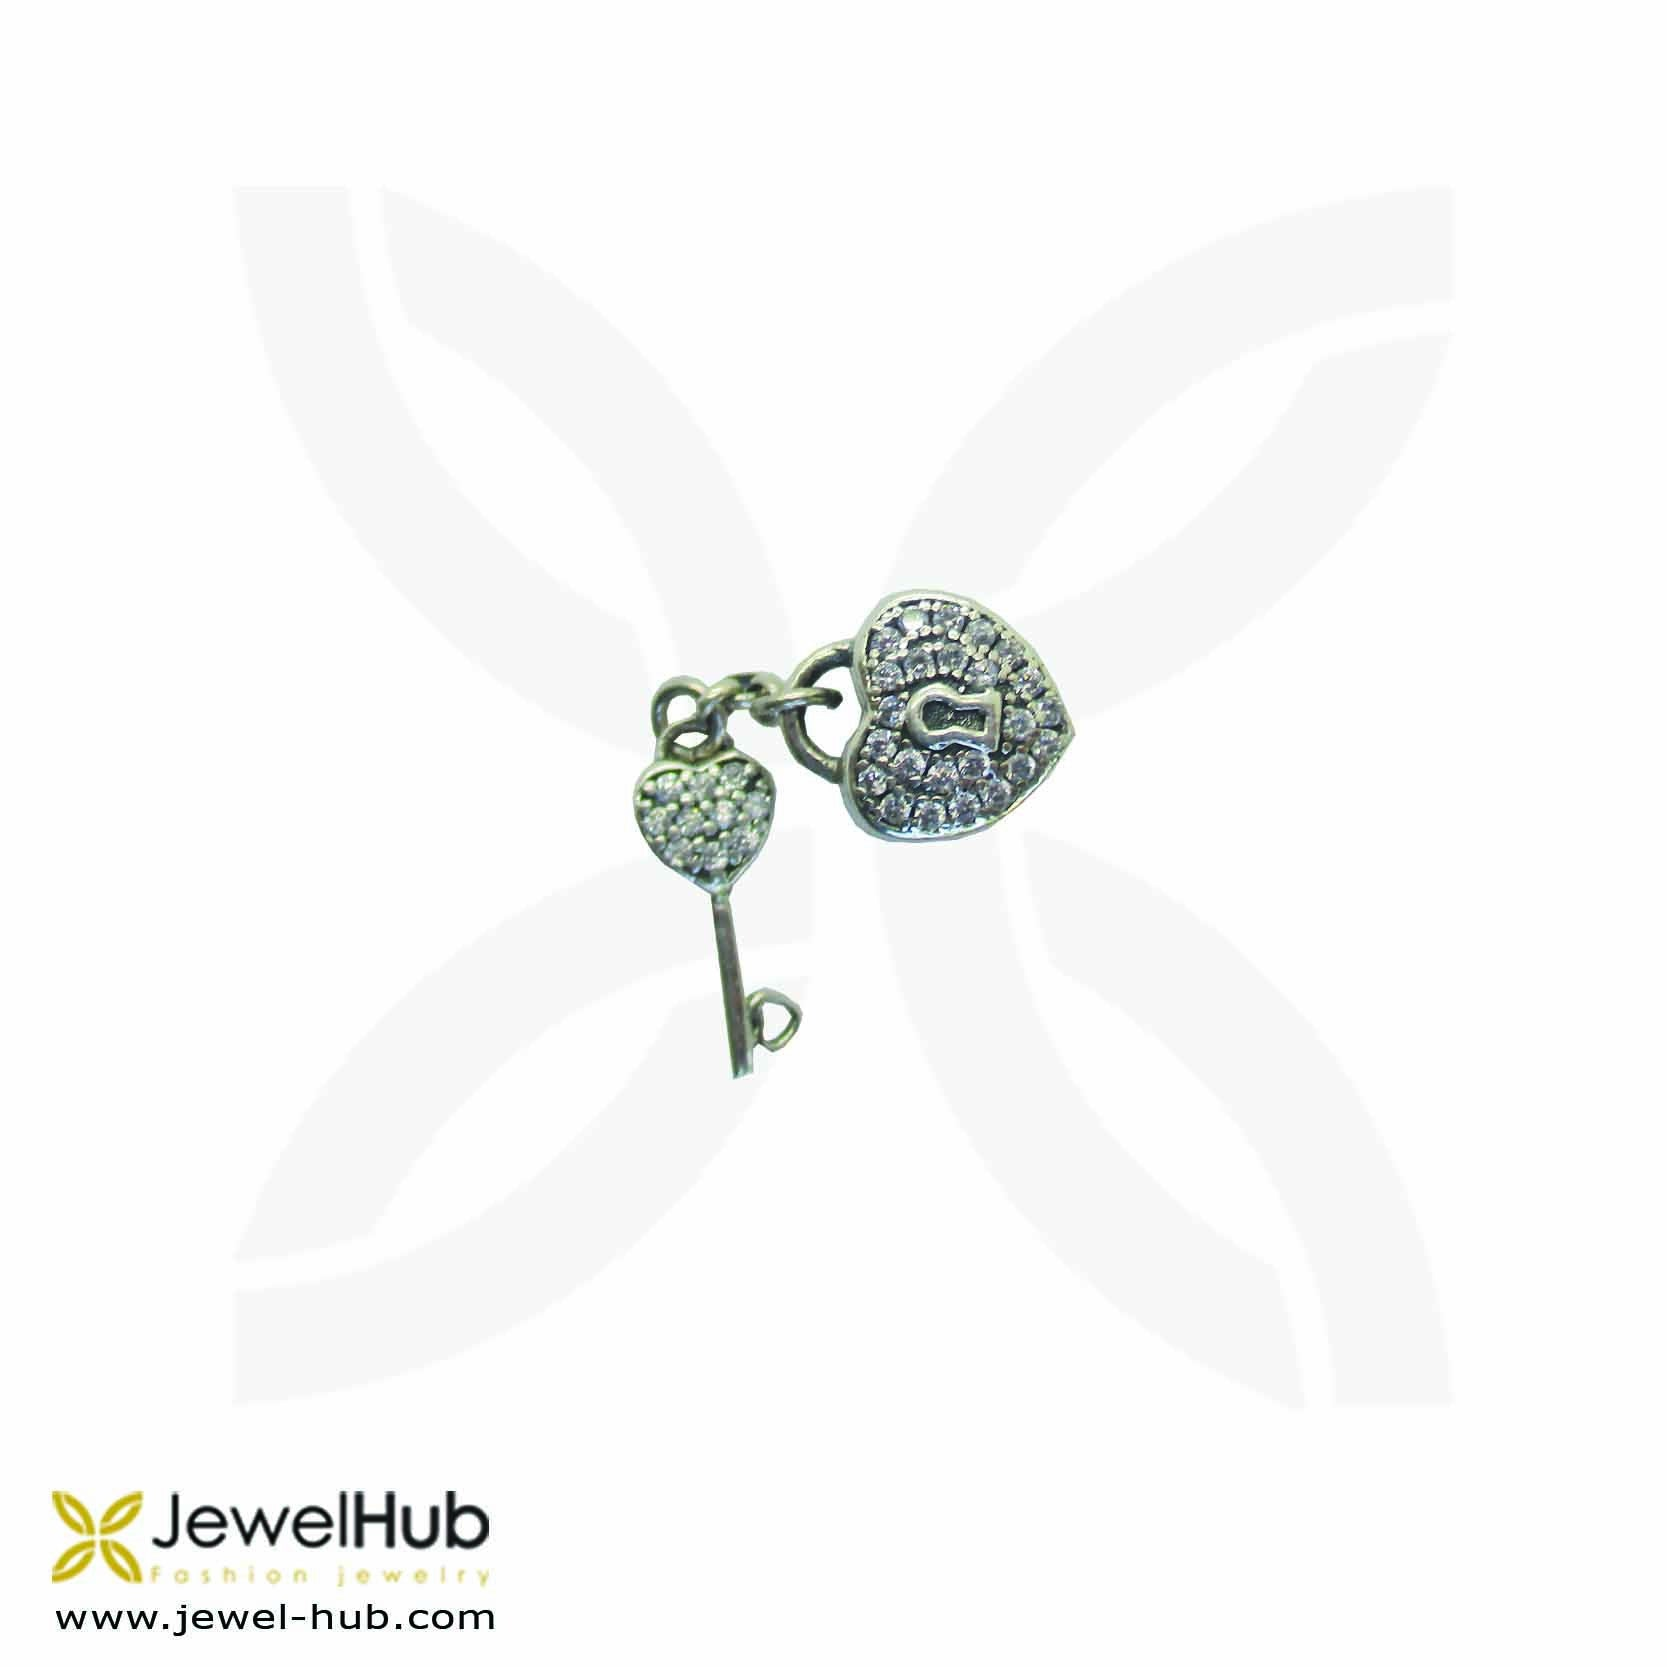 Heart Key Crystal Charm